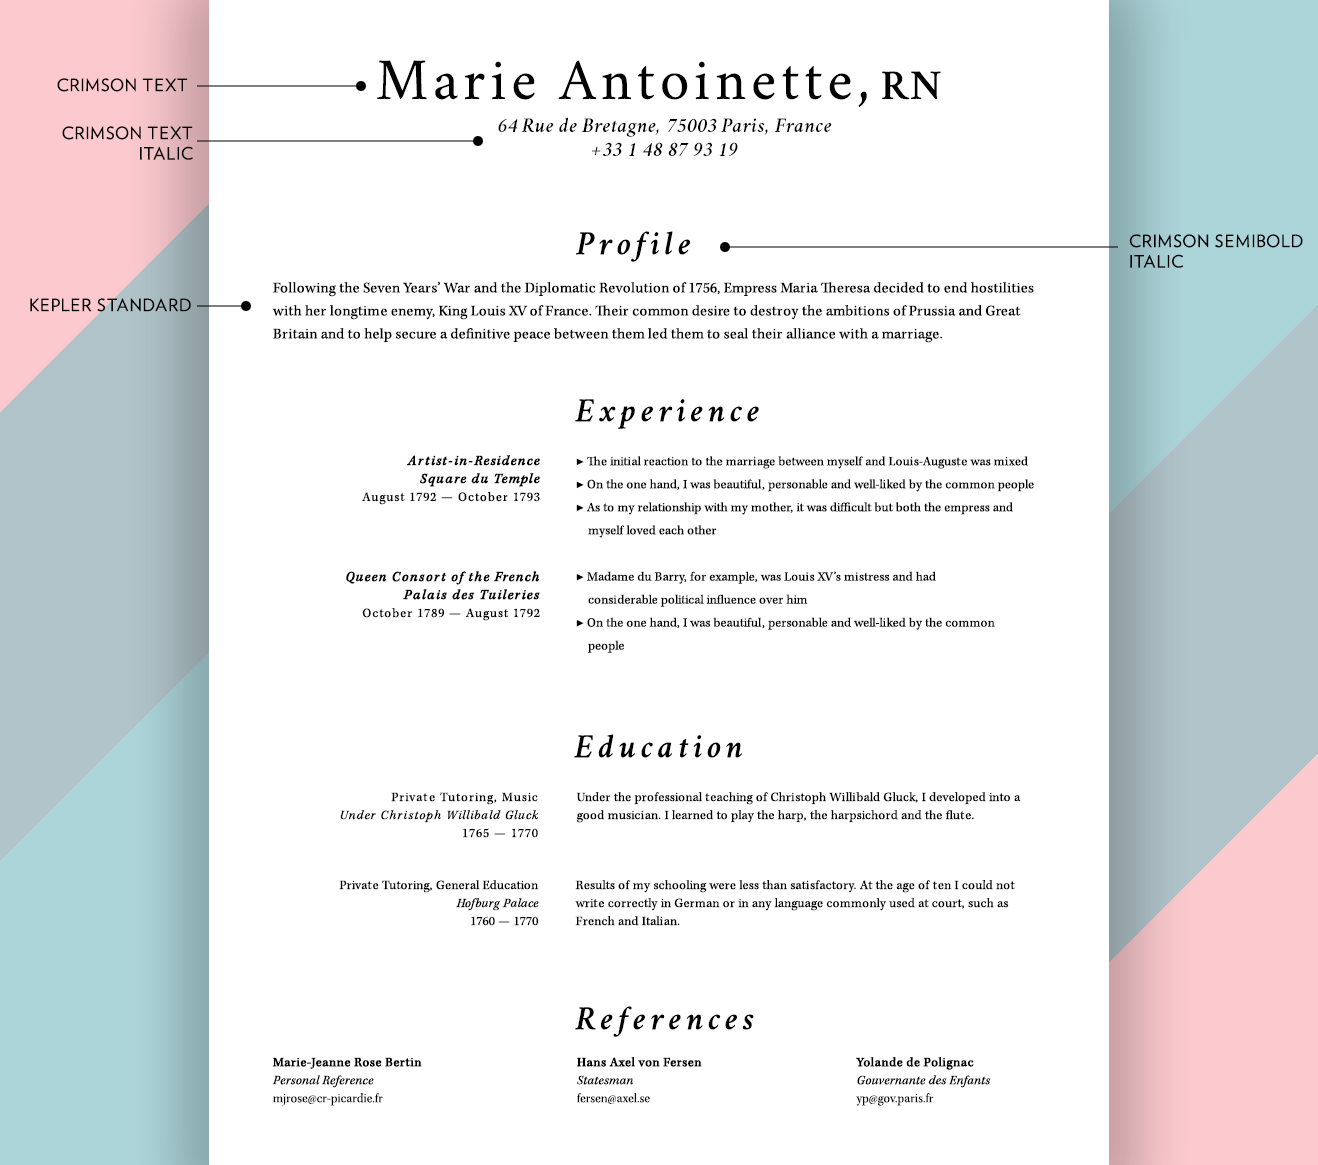 Good Resume Fonts What Fonts Should I Use On My Résumé? - Union.io